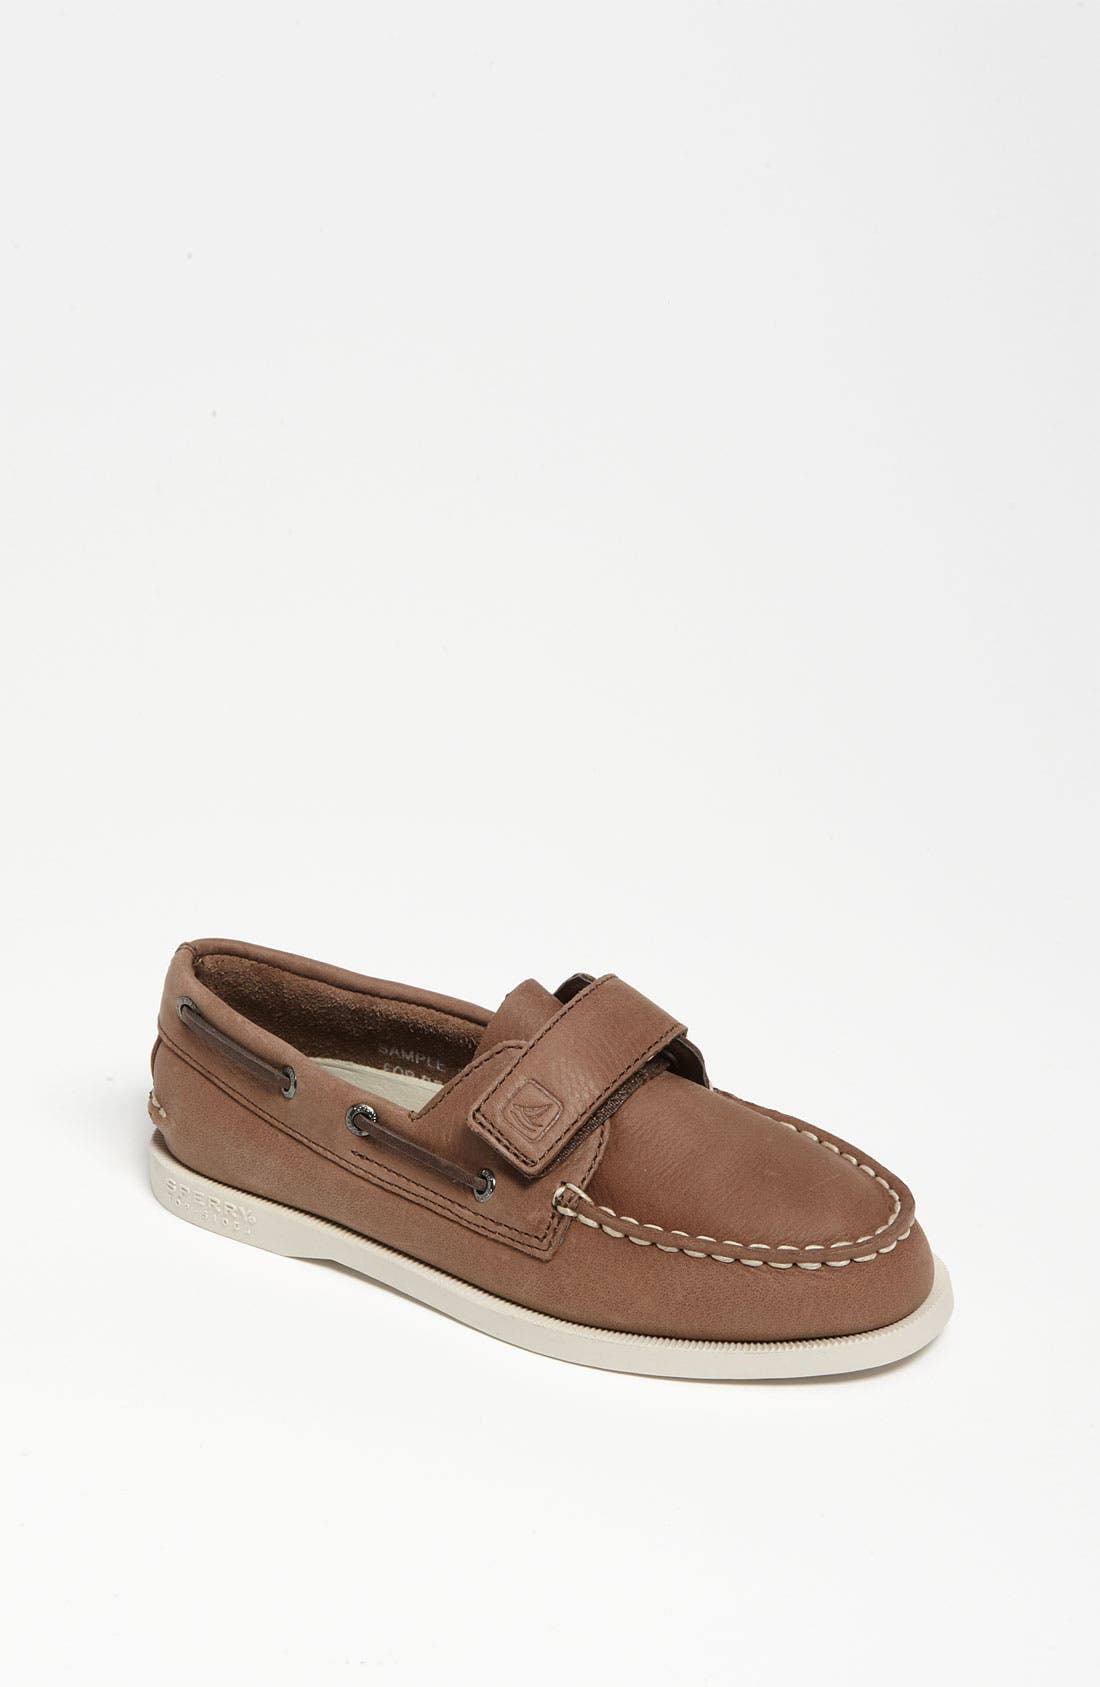 Sperry Top-Sider<sup>®</sup> Kids 'Authentic Original' Boat Shoe,                         Main,                         color, BROWN